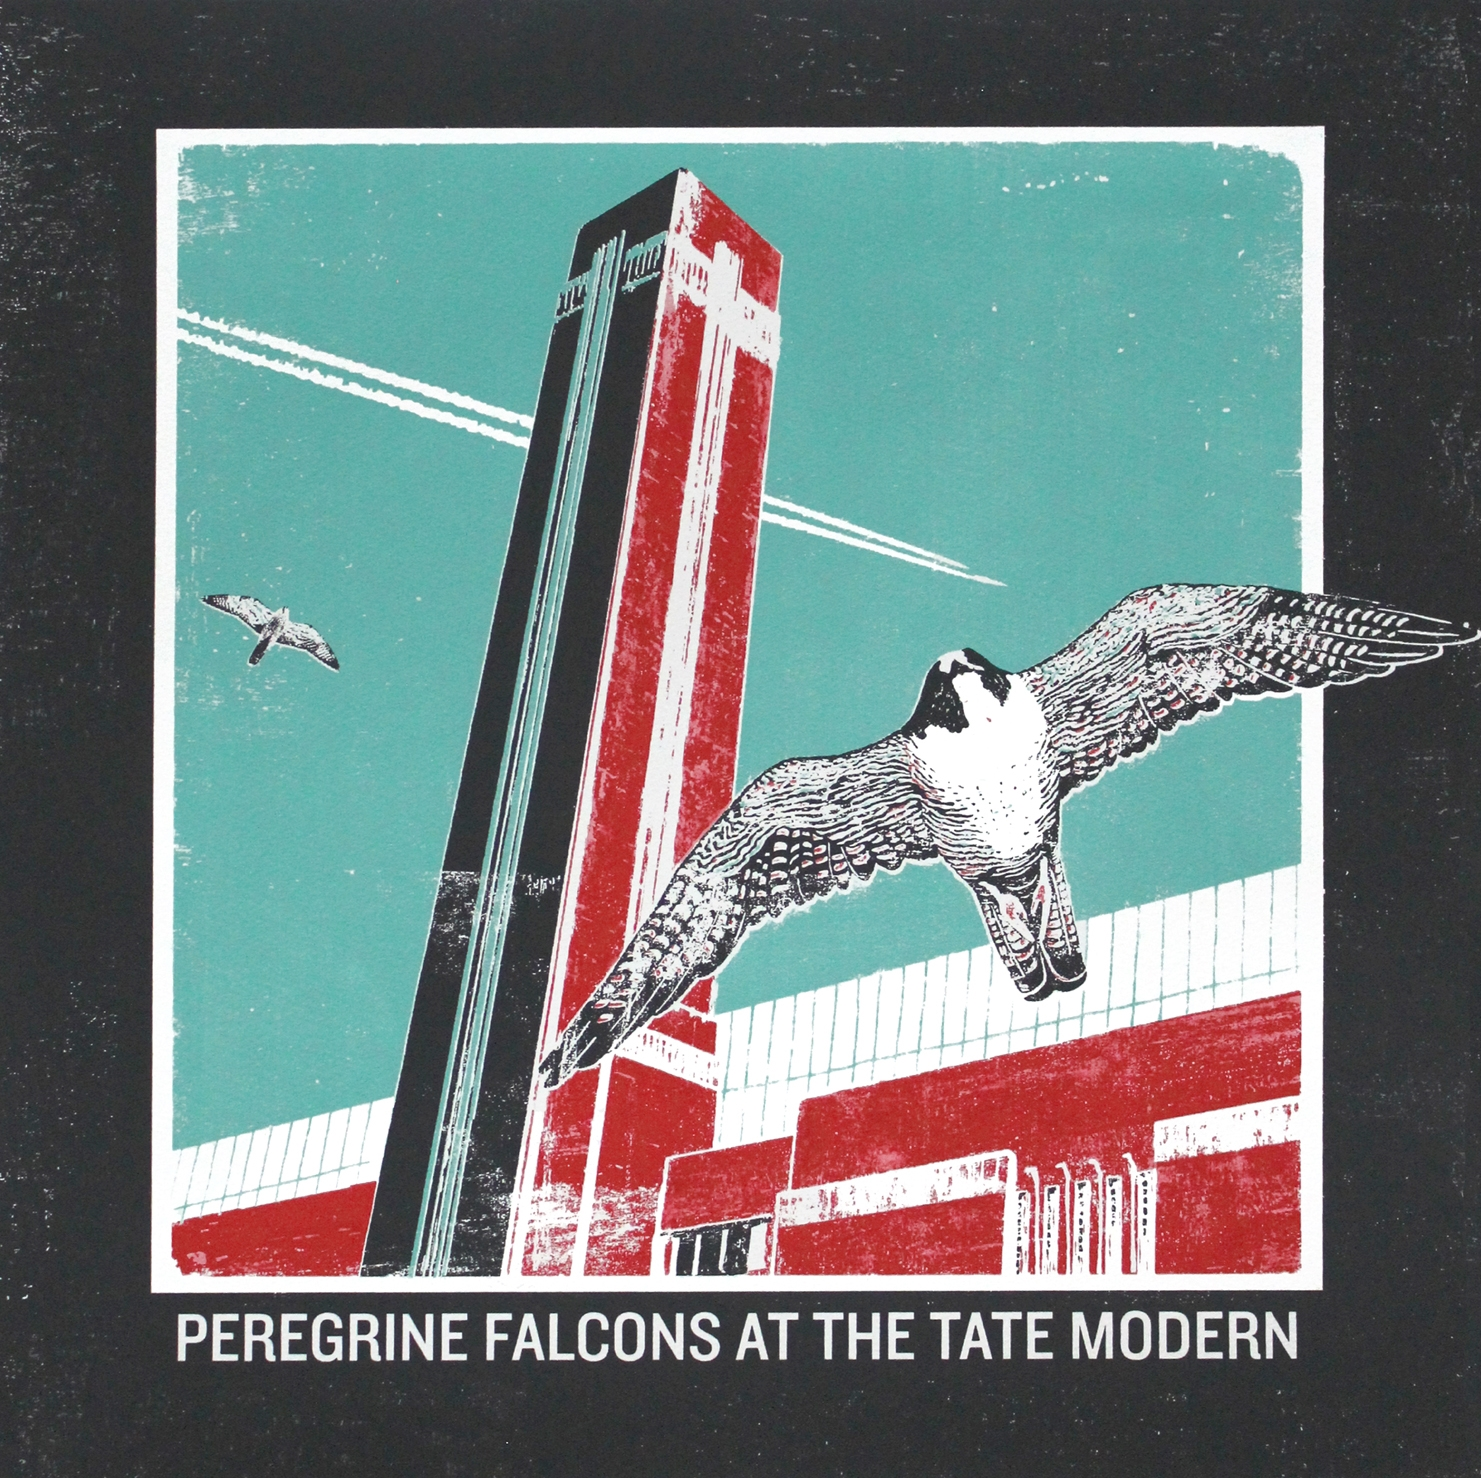 Peregrine Falcons at the Tate Modern.